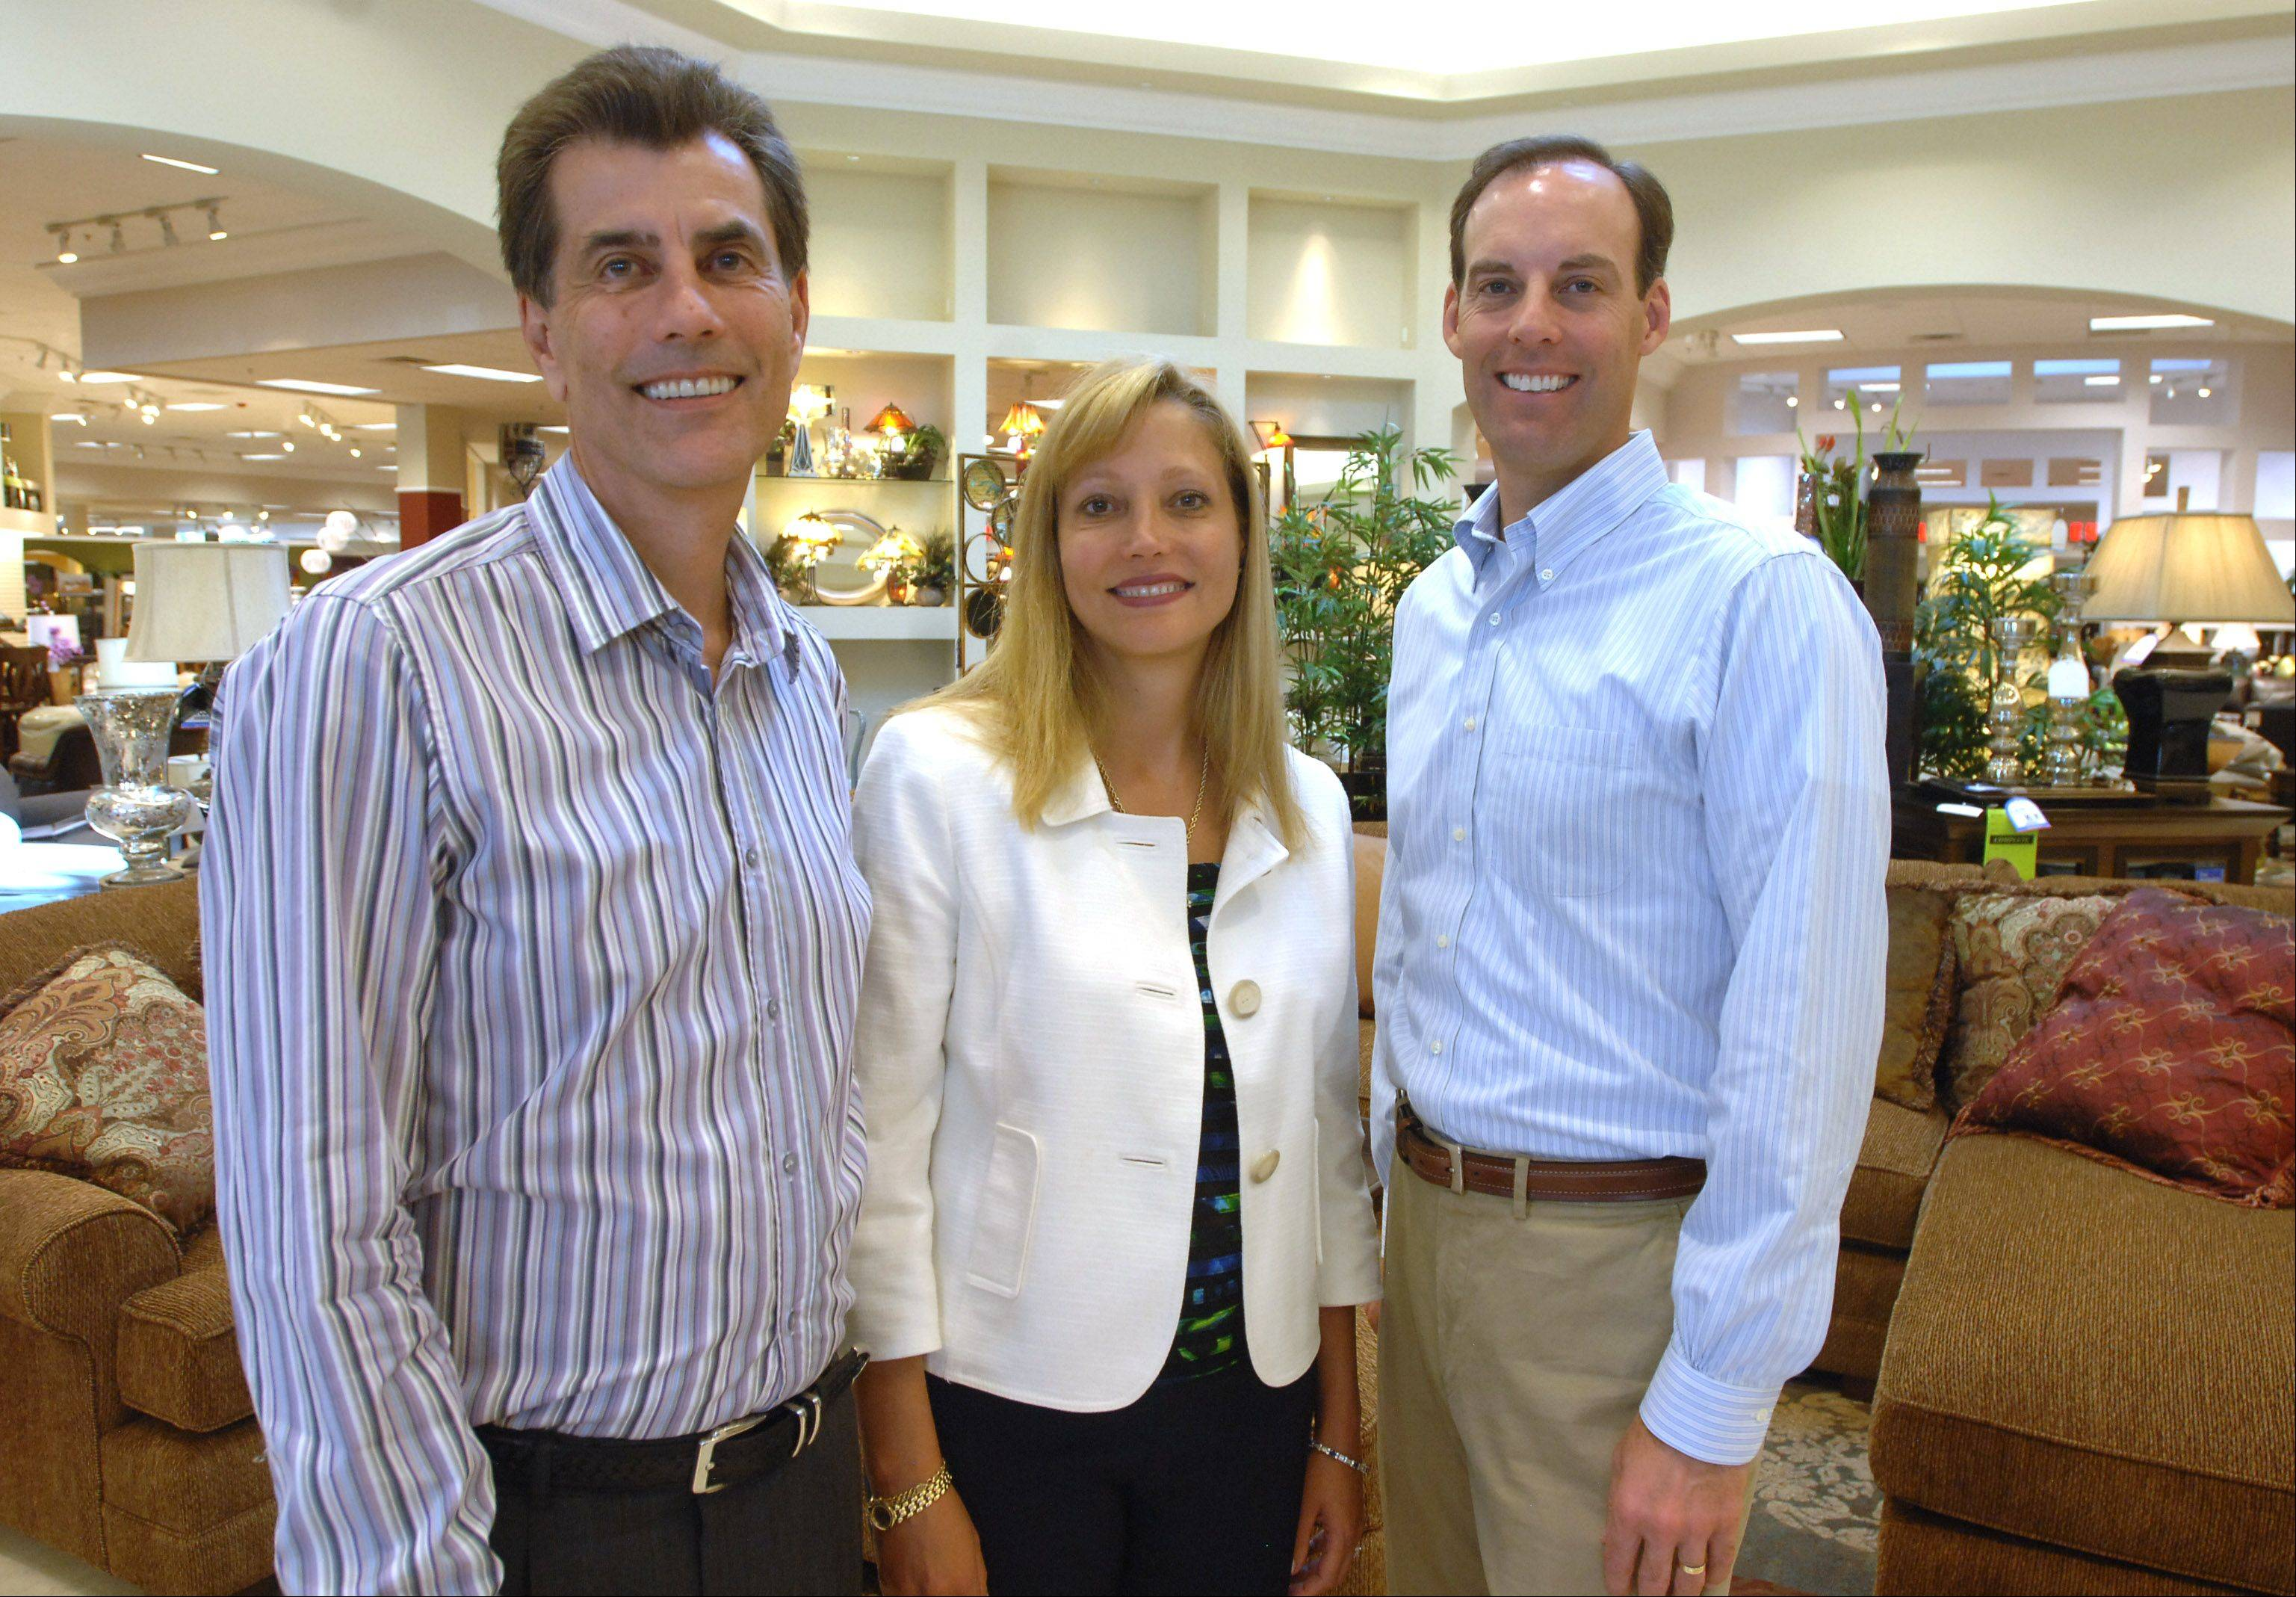 Wisconsin-based Steinhafels, a third-generation family-owned furniture retailer, is opening its first Illinois store in Vernon Hills. From left are company officials Gary Steinhafel, Ellen Steinhafel-Lappe and Mark Steinhafel.